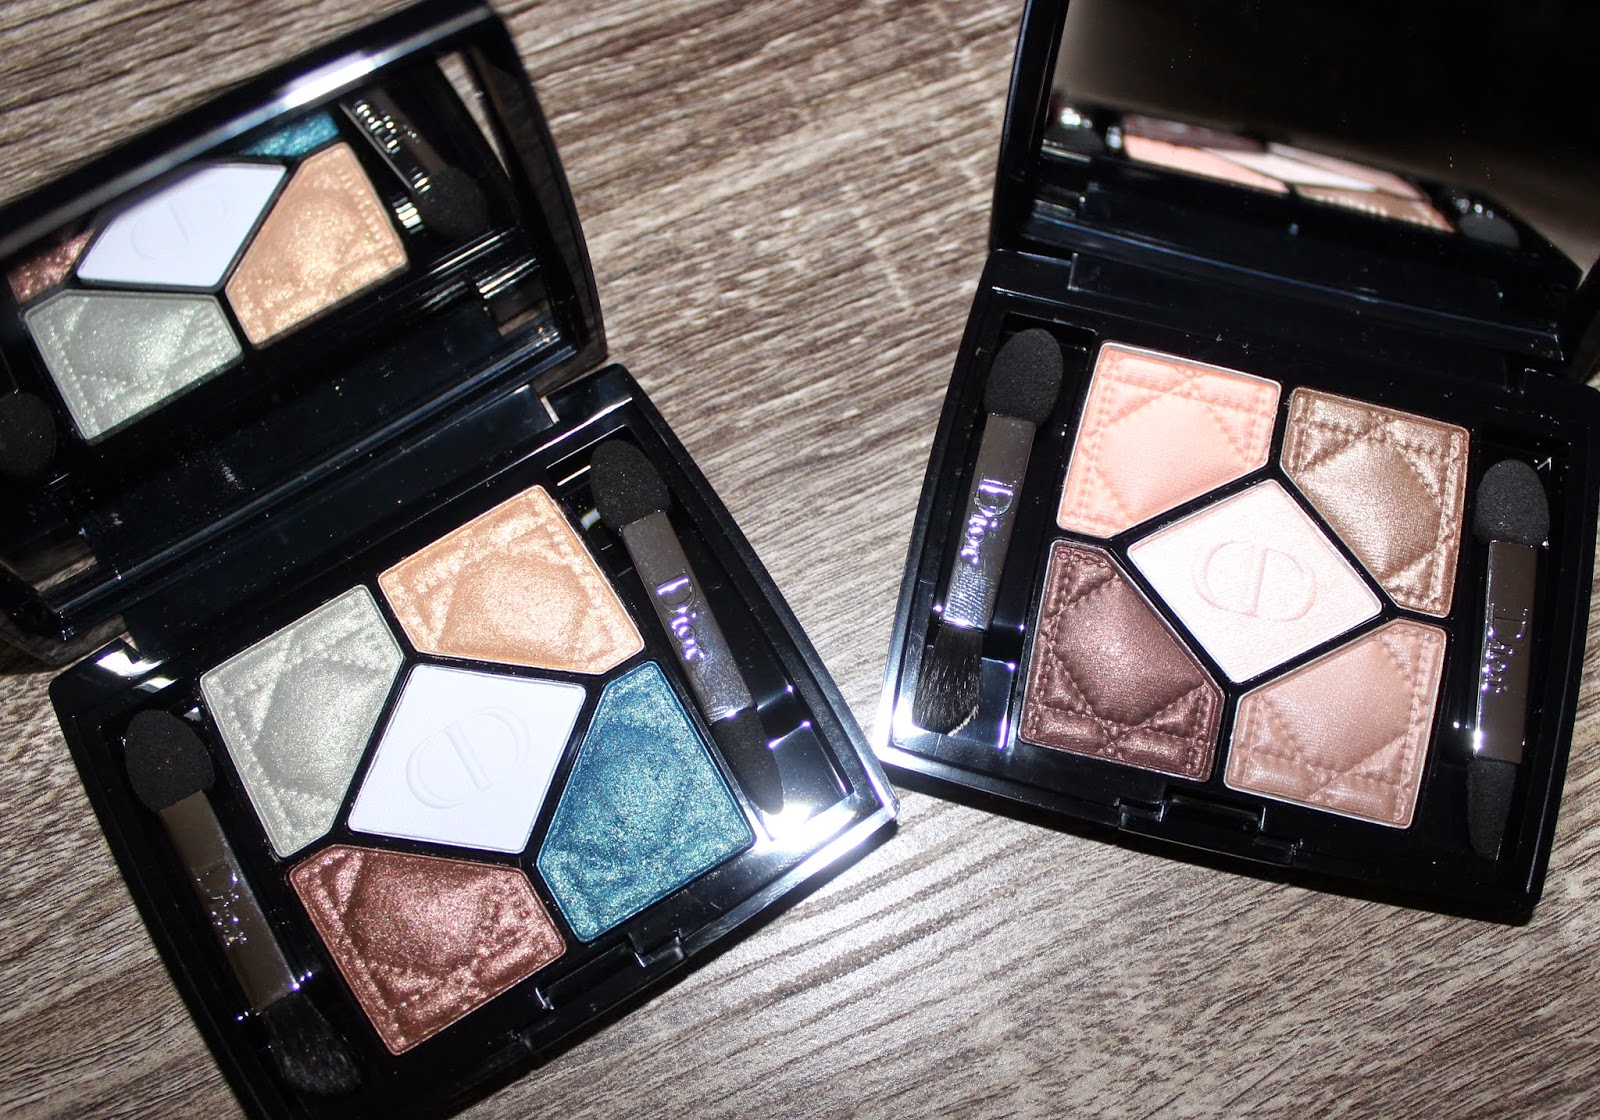 Dior 5 Couleurs Eyeshadow Palette in Ambre Nuit & Contraste Horizon